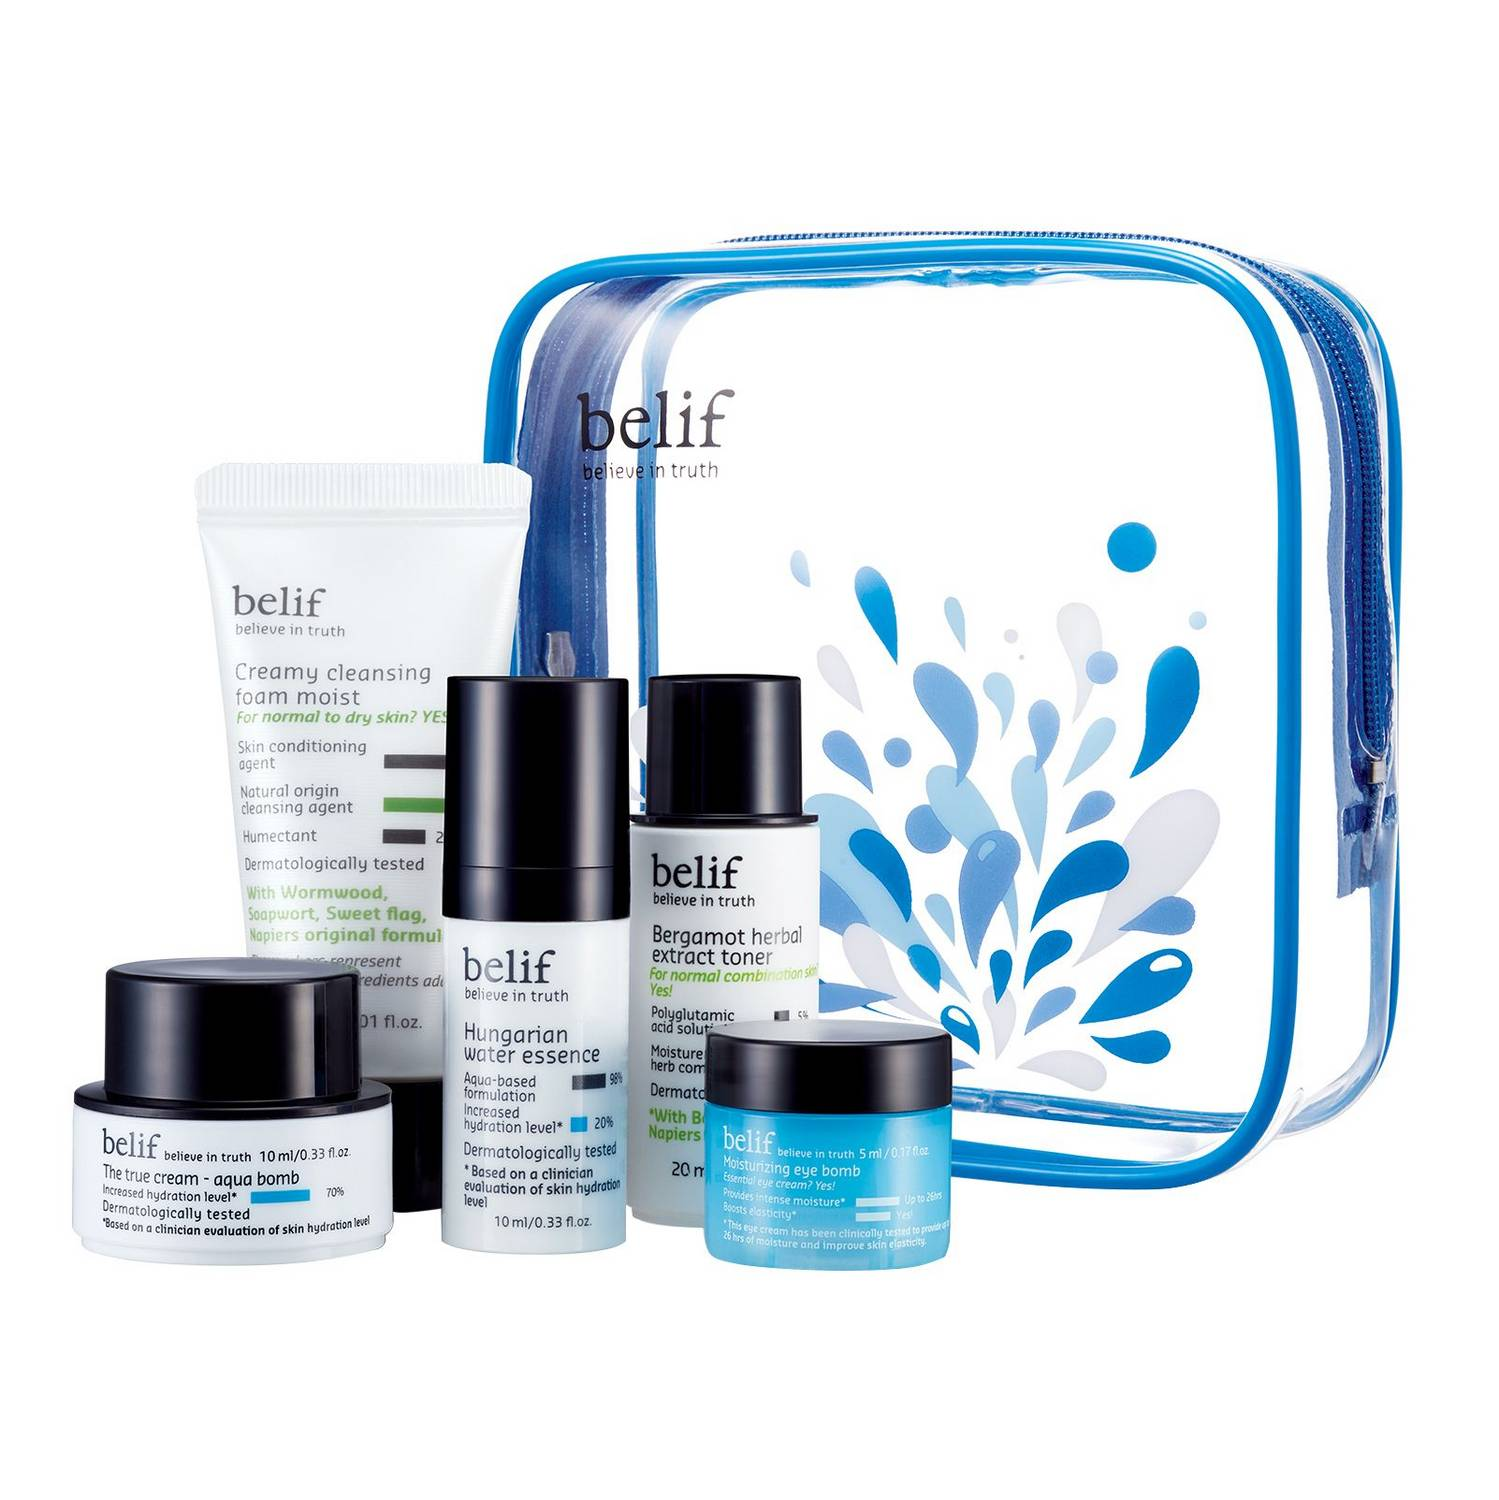 BELIF'S BESTSELLERS BEAUTY TO GO TRAVEL KIT